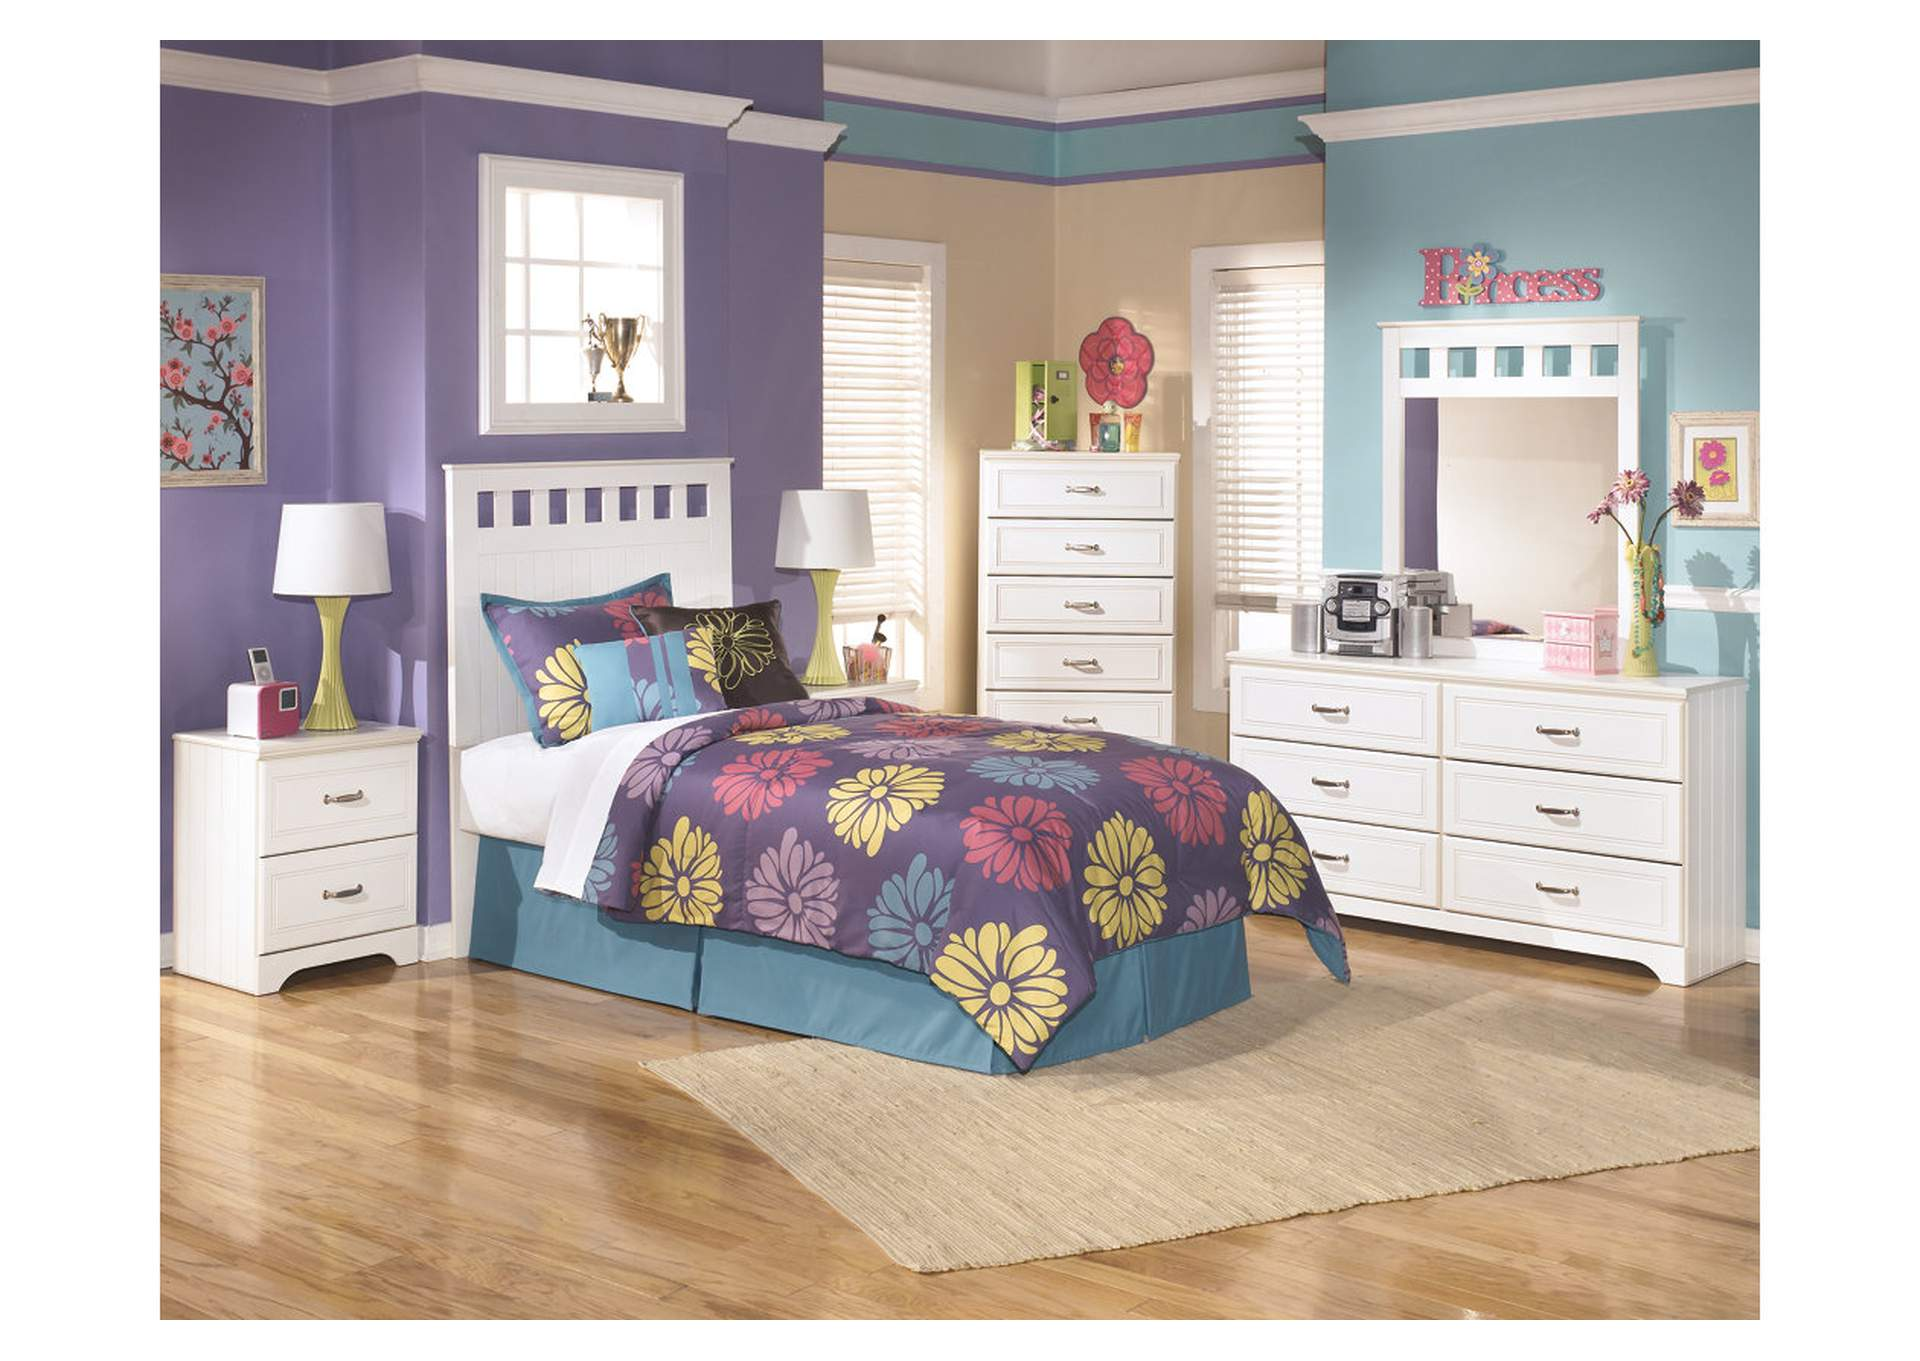 Lulu Twin Panel Headboard w/Dresser, Mirror & Drawer Chest,Signature Design By Ashley